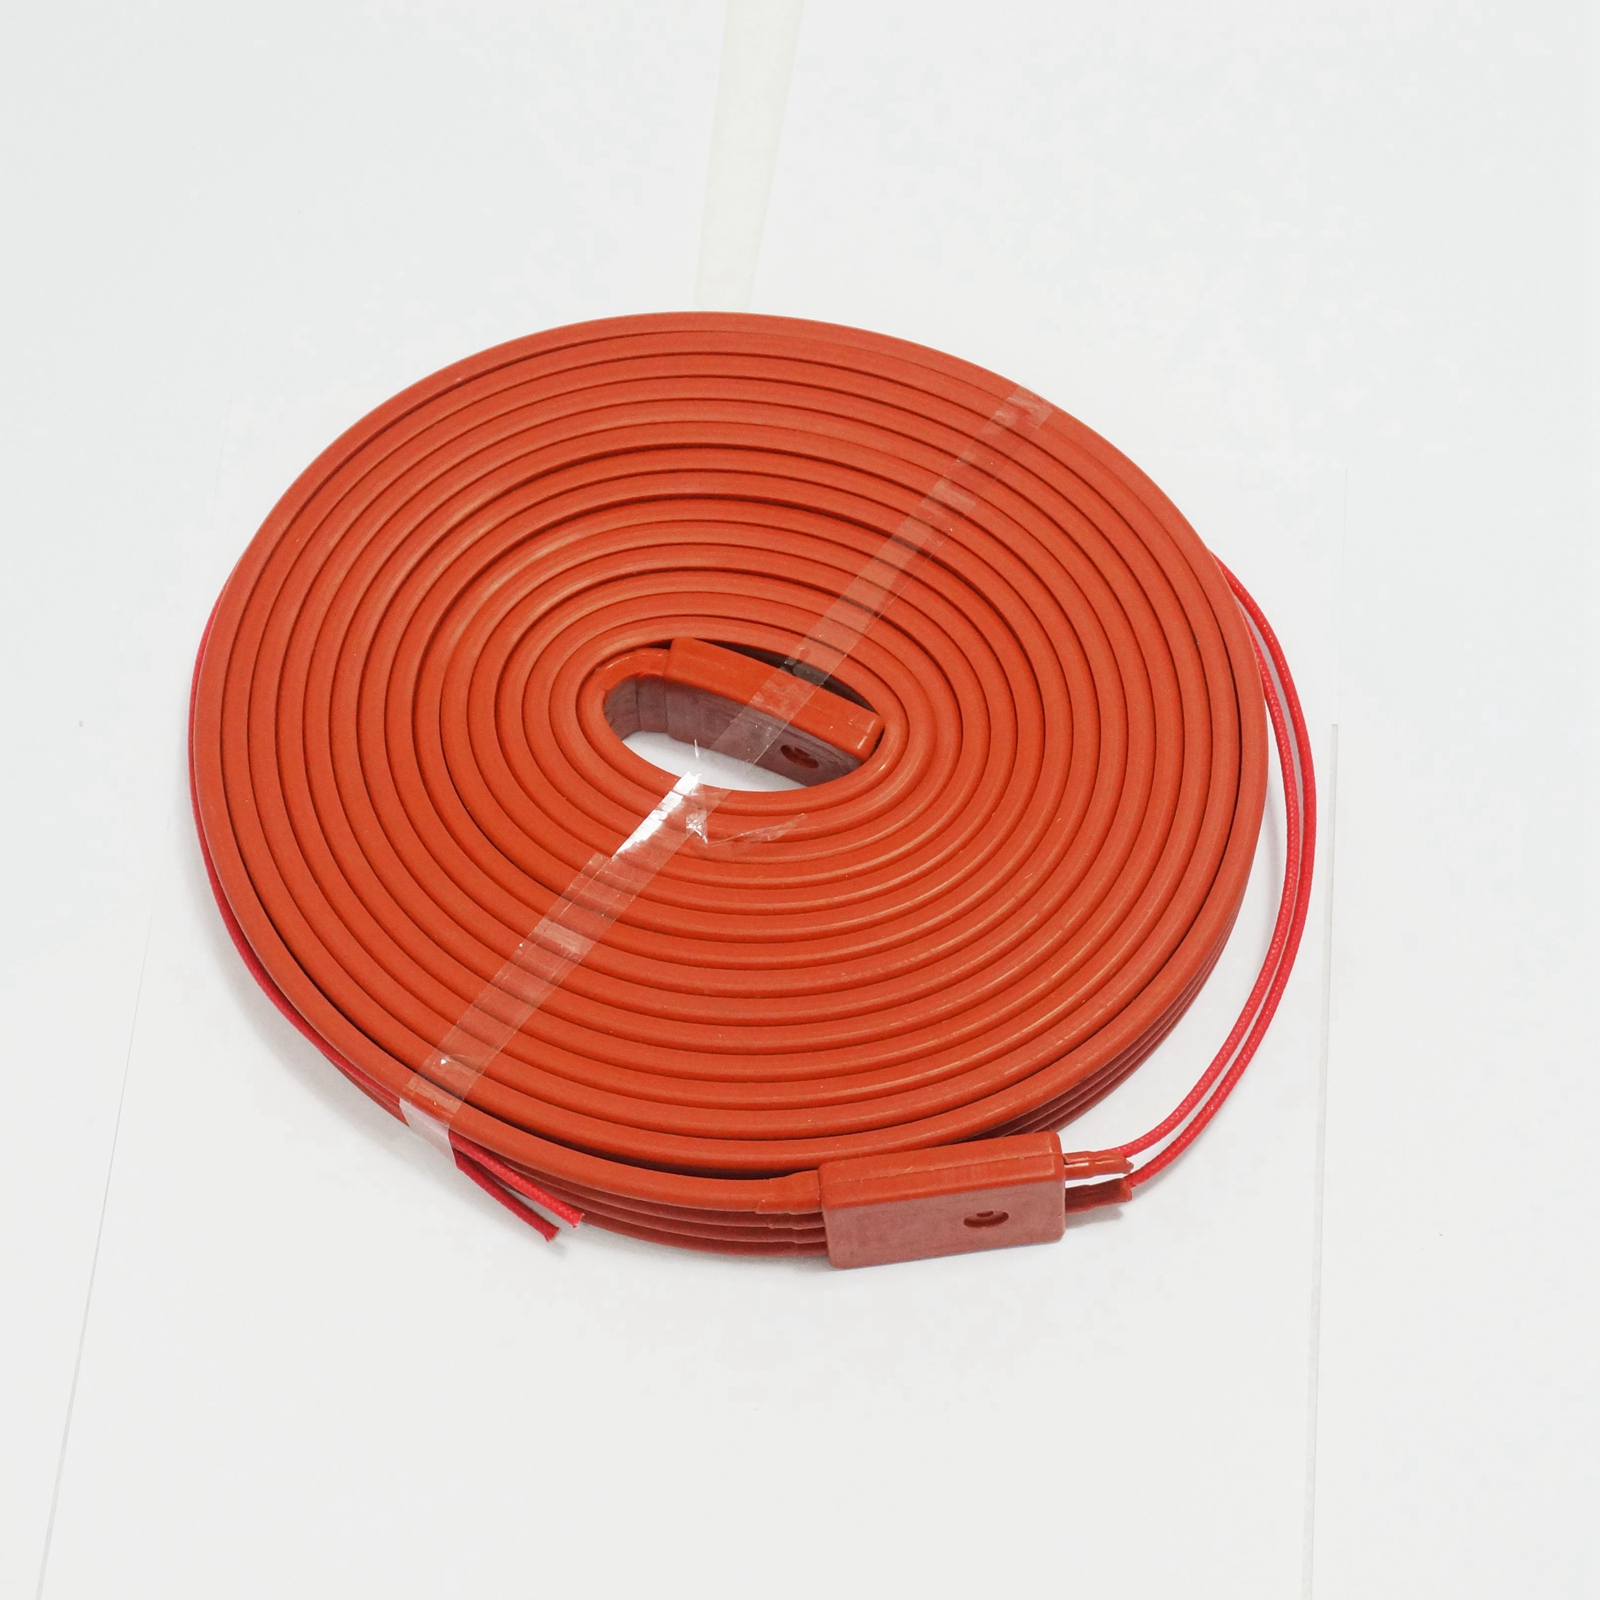 220V AC 25x5000mm 500W Waterproof Flexible Silicone Rubber Heater Heating Belt Unfreezer for Pipeline Electrical Wires 15mmx3m 240w 220v high quality flexible silicone heating belt heat tracing belt silicone rubber pipe heater waterproof electric